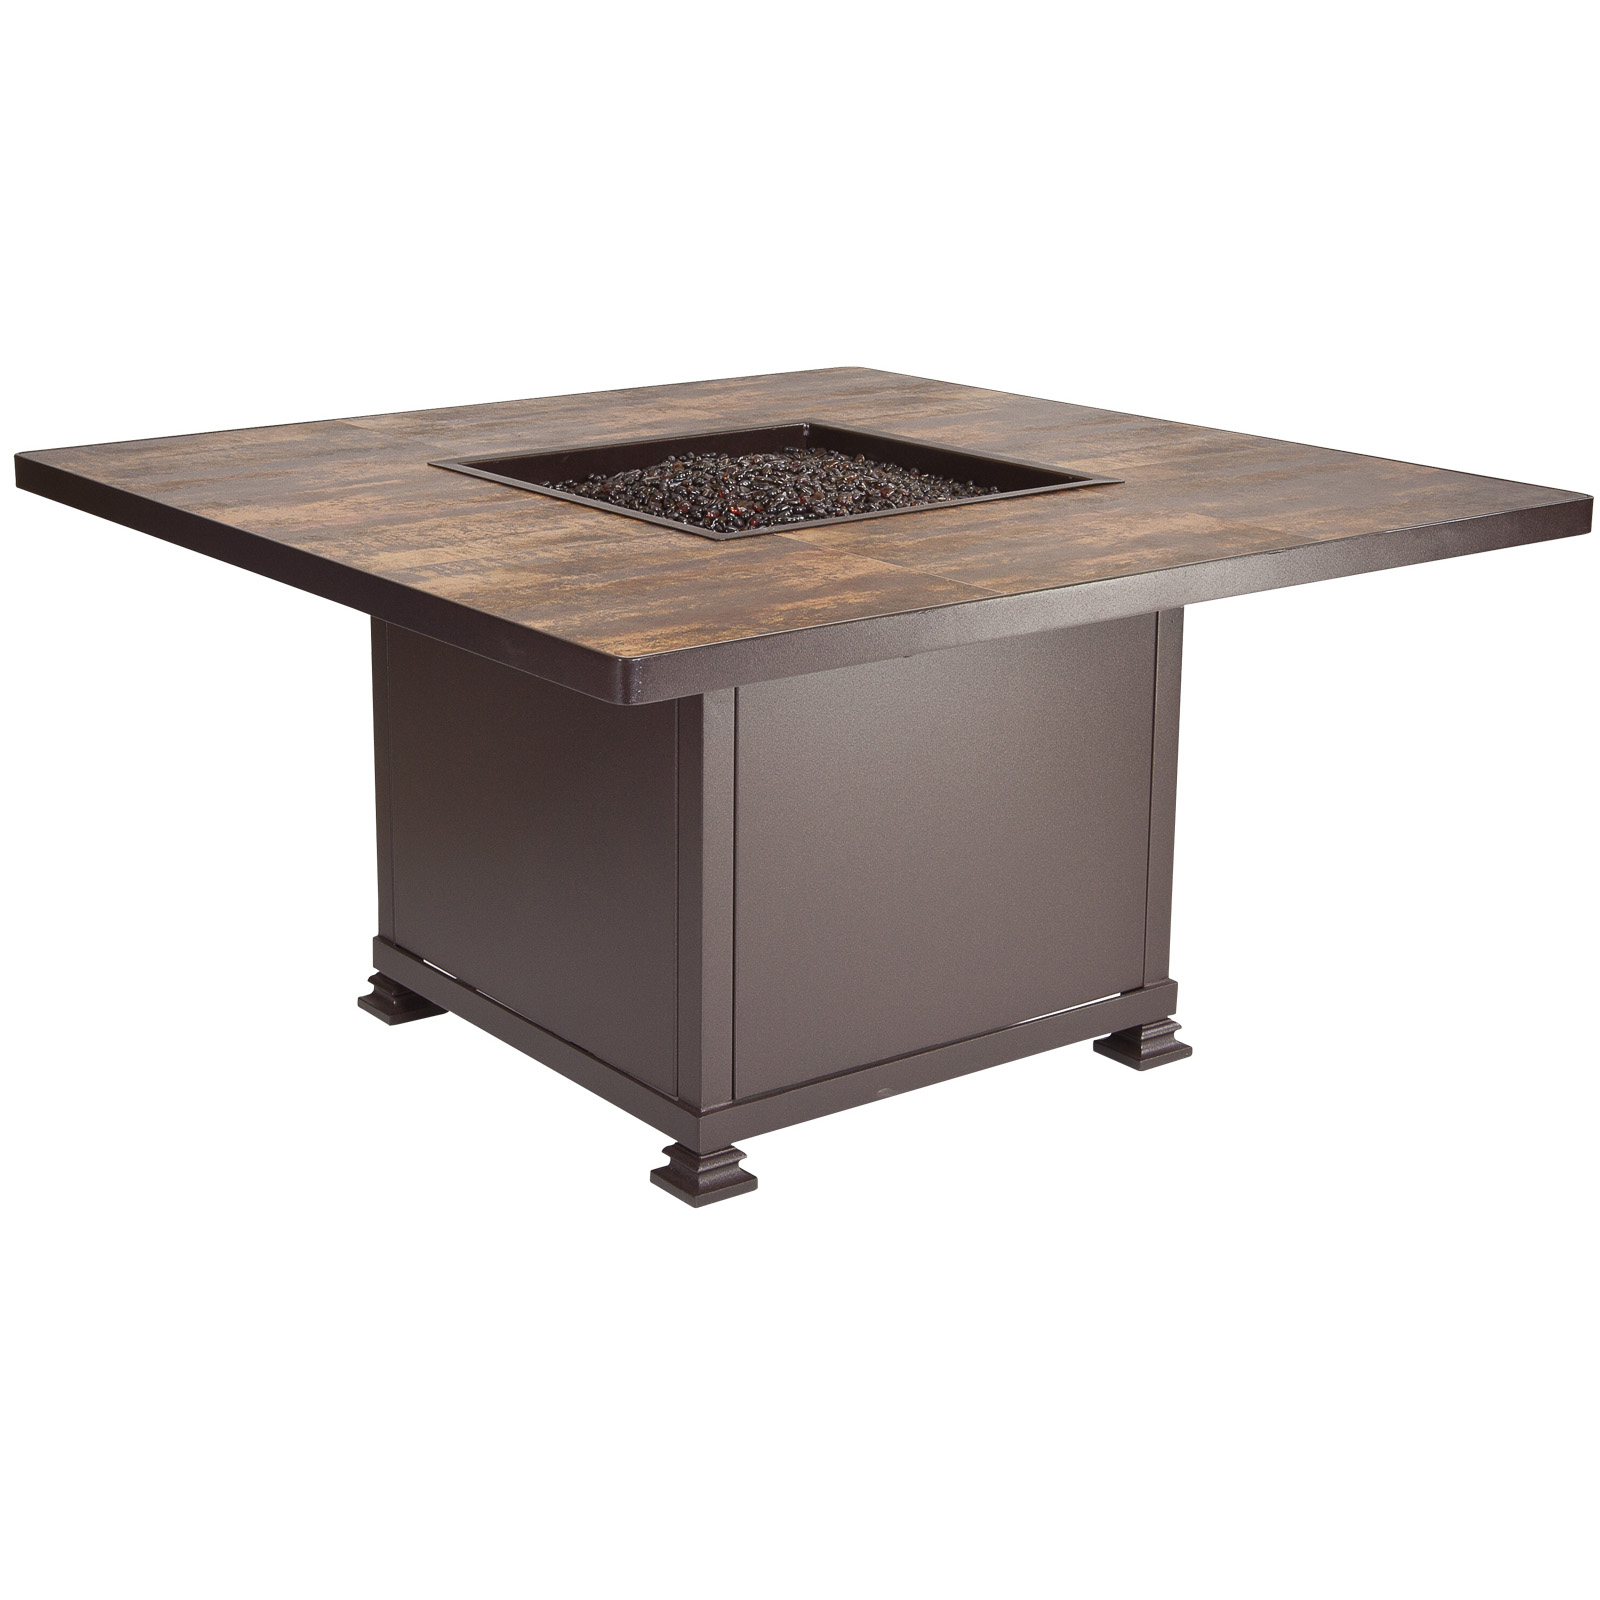 "OW Lee Santorini 42"" Square Chat Height Fire Pit Table - 5110-42SQC"